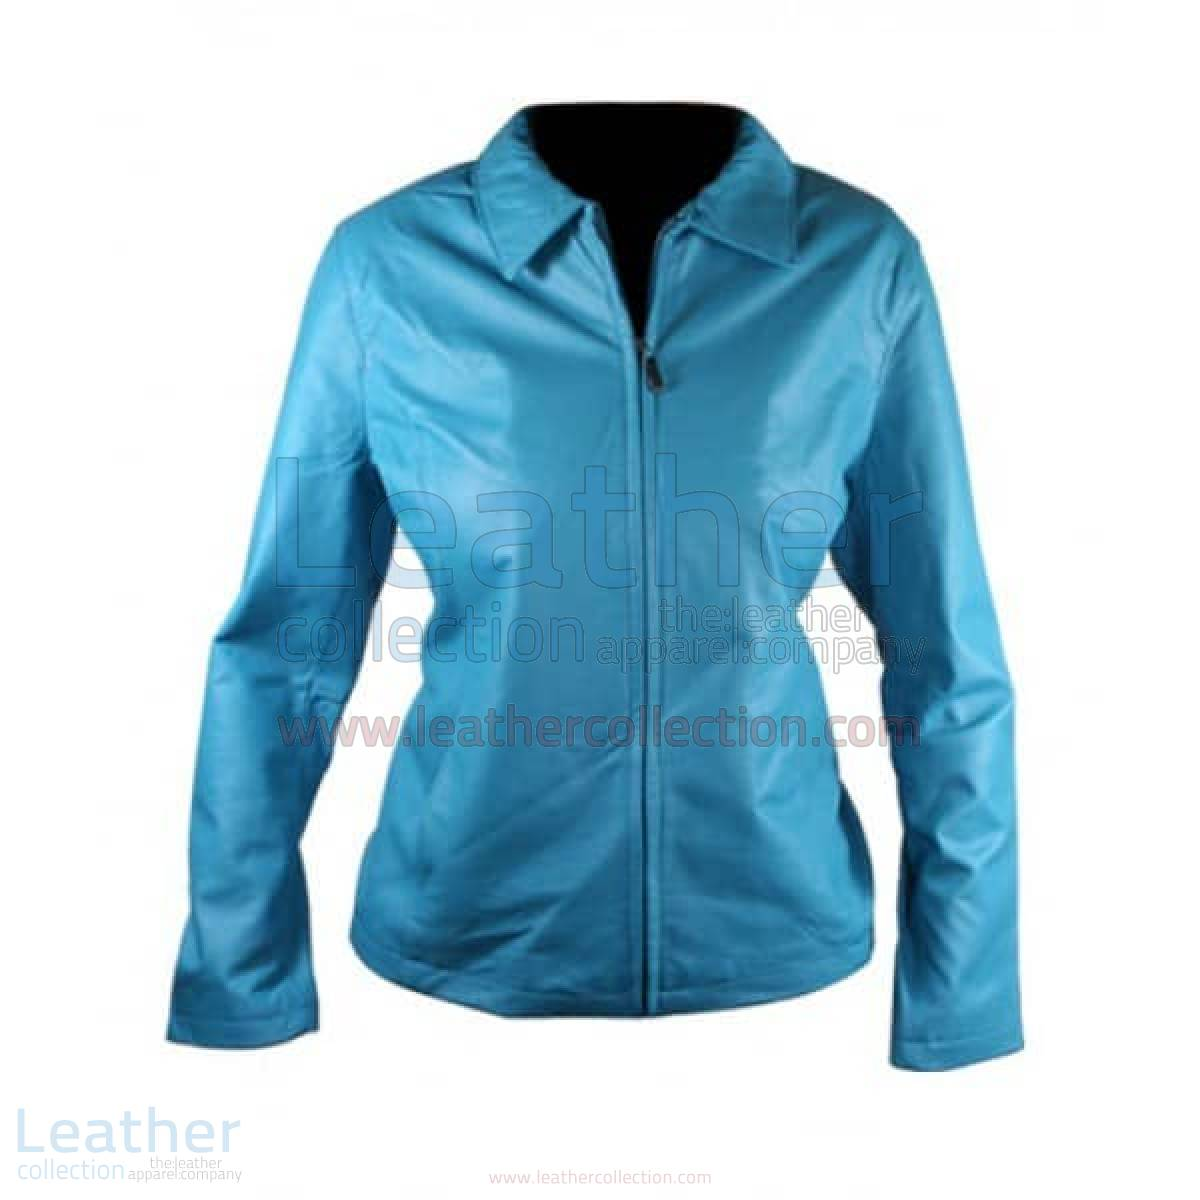 Classic Ladies Leather Jacket –  Jacket